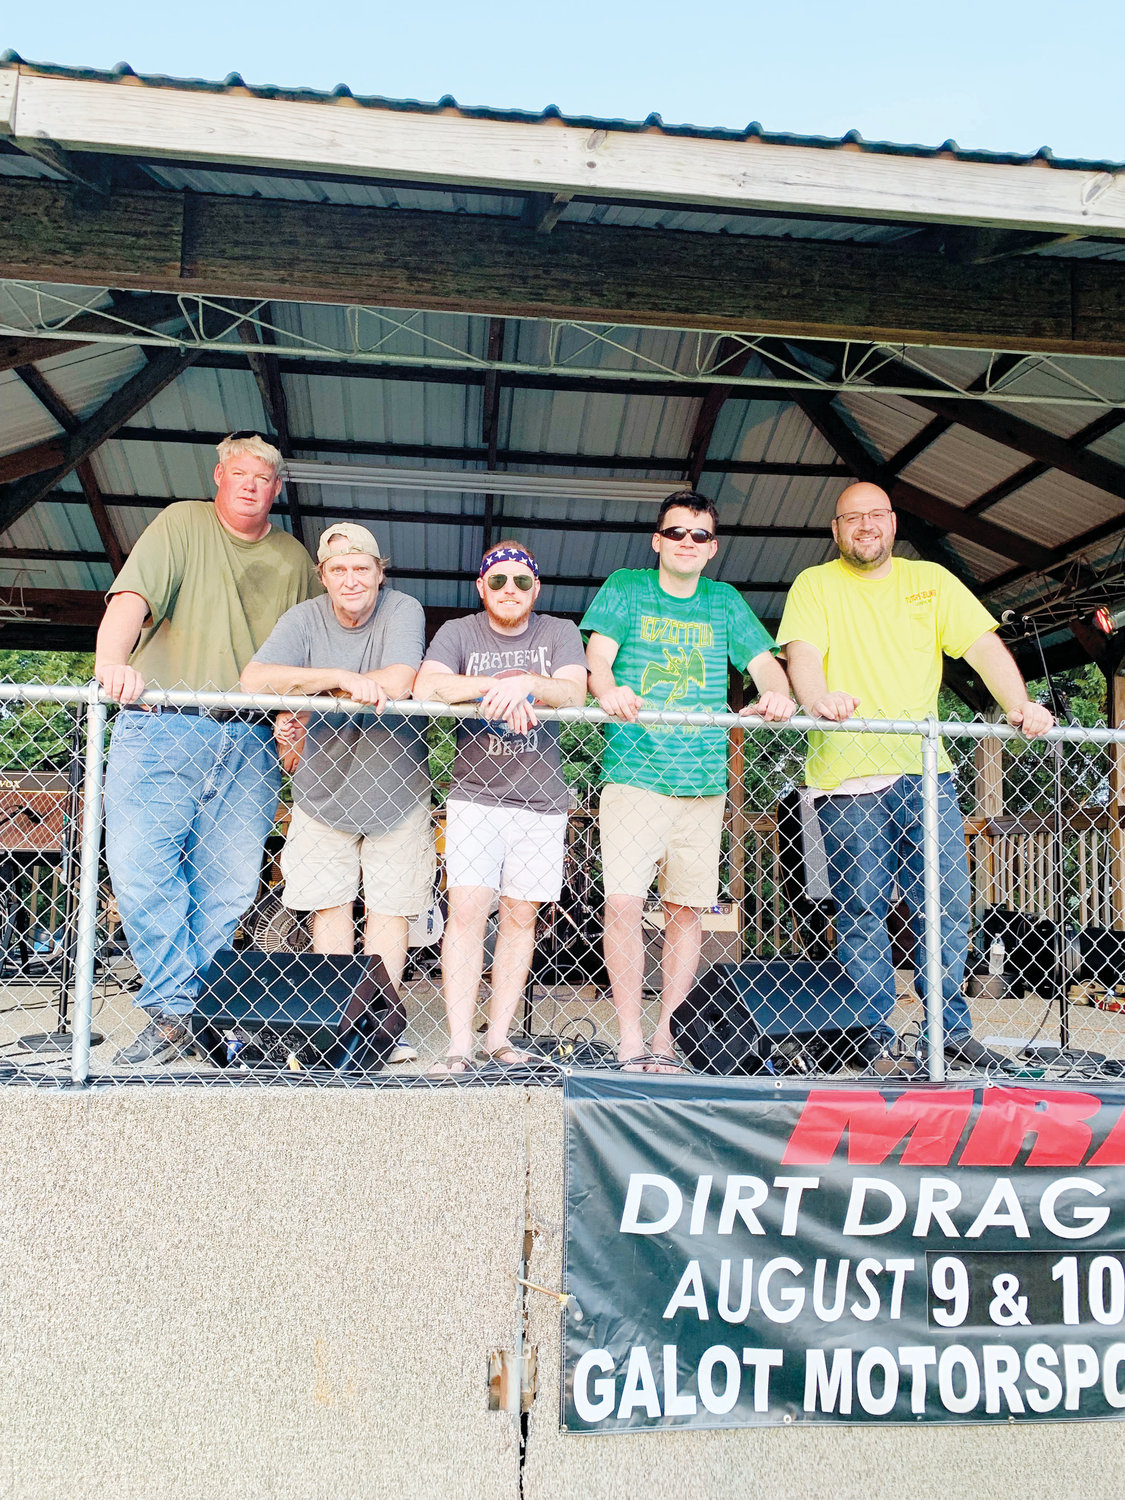 Local five-piece band The Aviators will play a variety of music from classic rock to country Saturday for the Downtown Summer Explosion in Dunn. Band members include, from left, Kevin Hinson, John Scott McKay, Wade Hodges, David Morris and James Brian Mason.